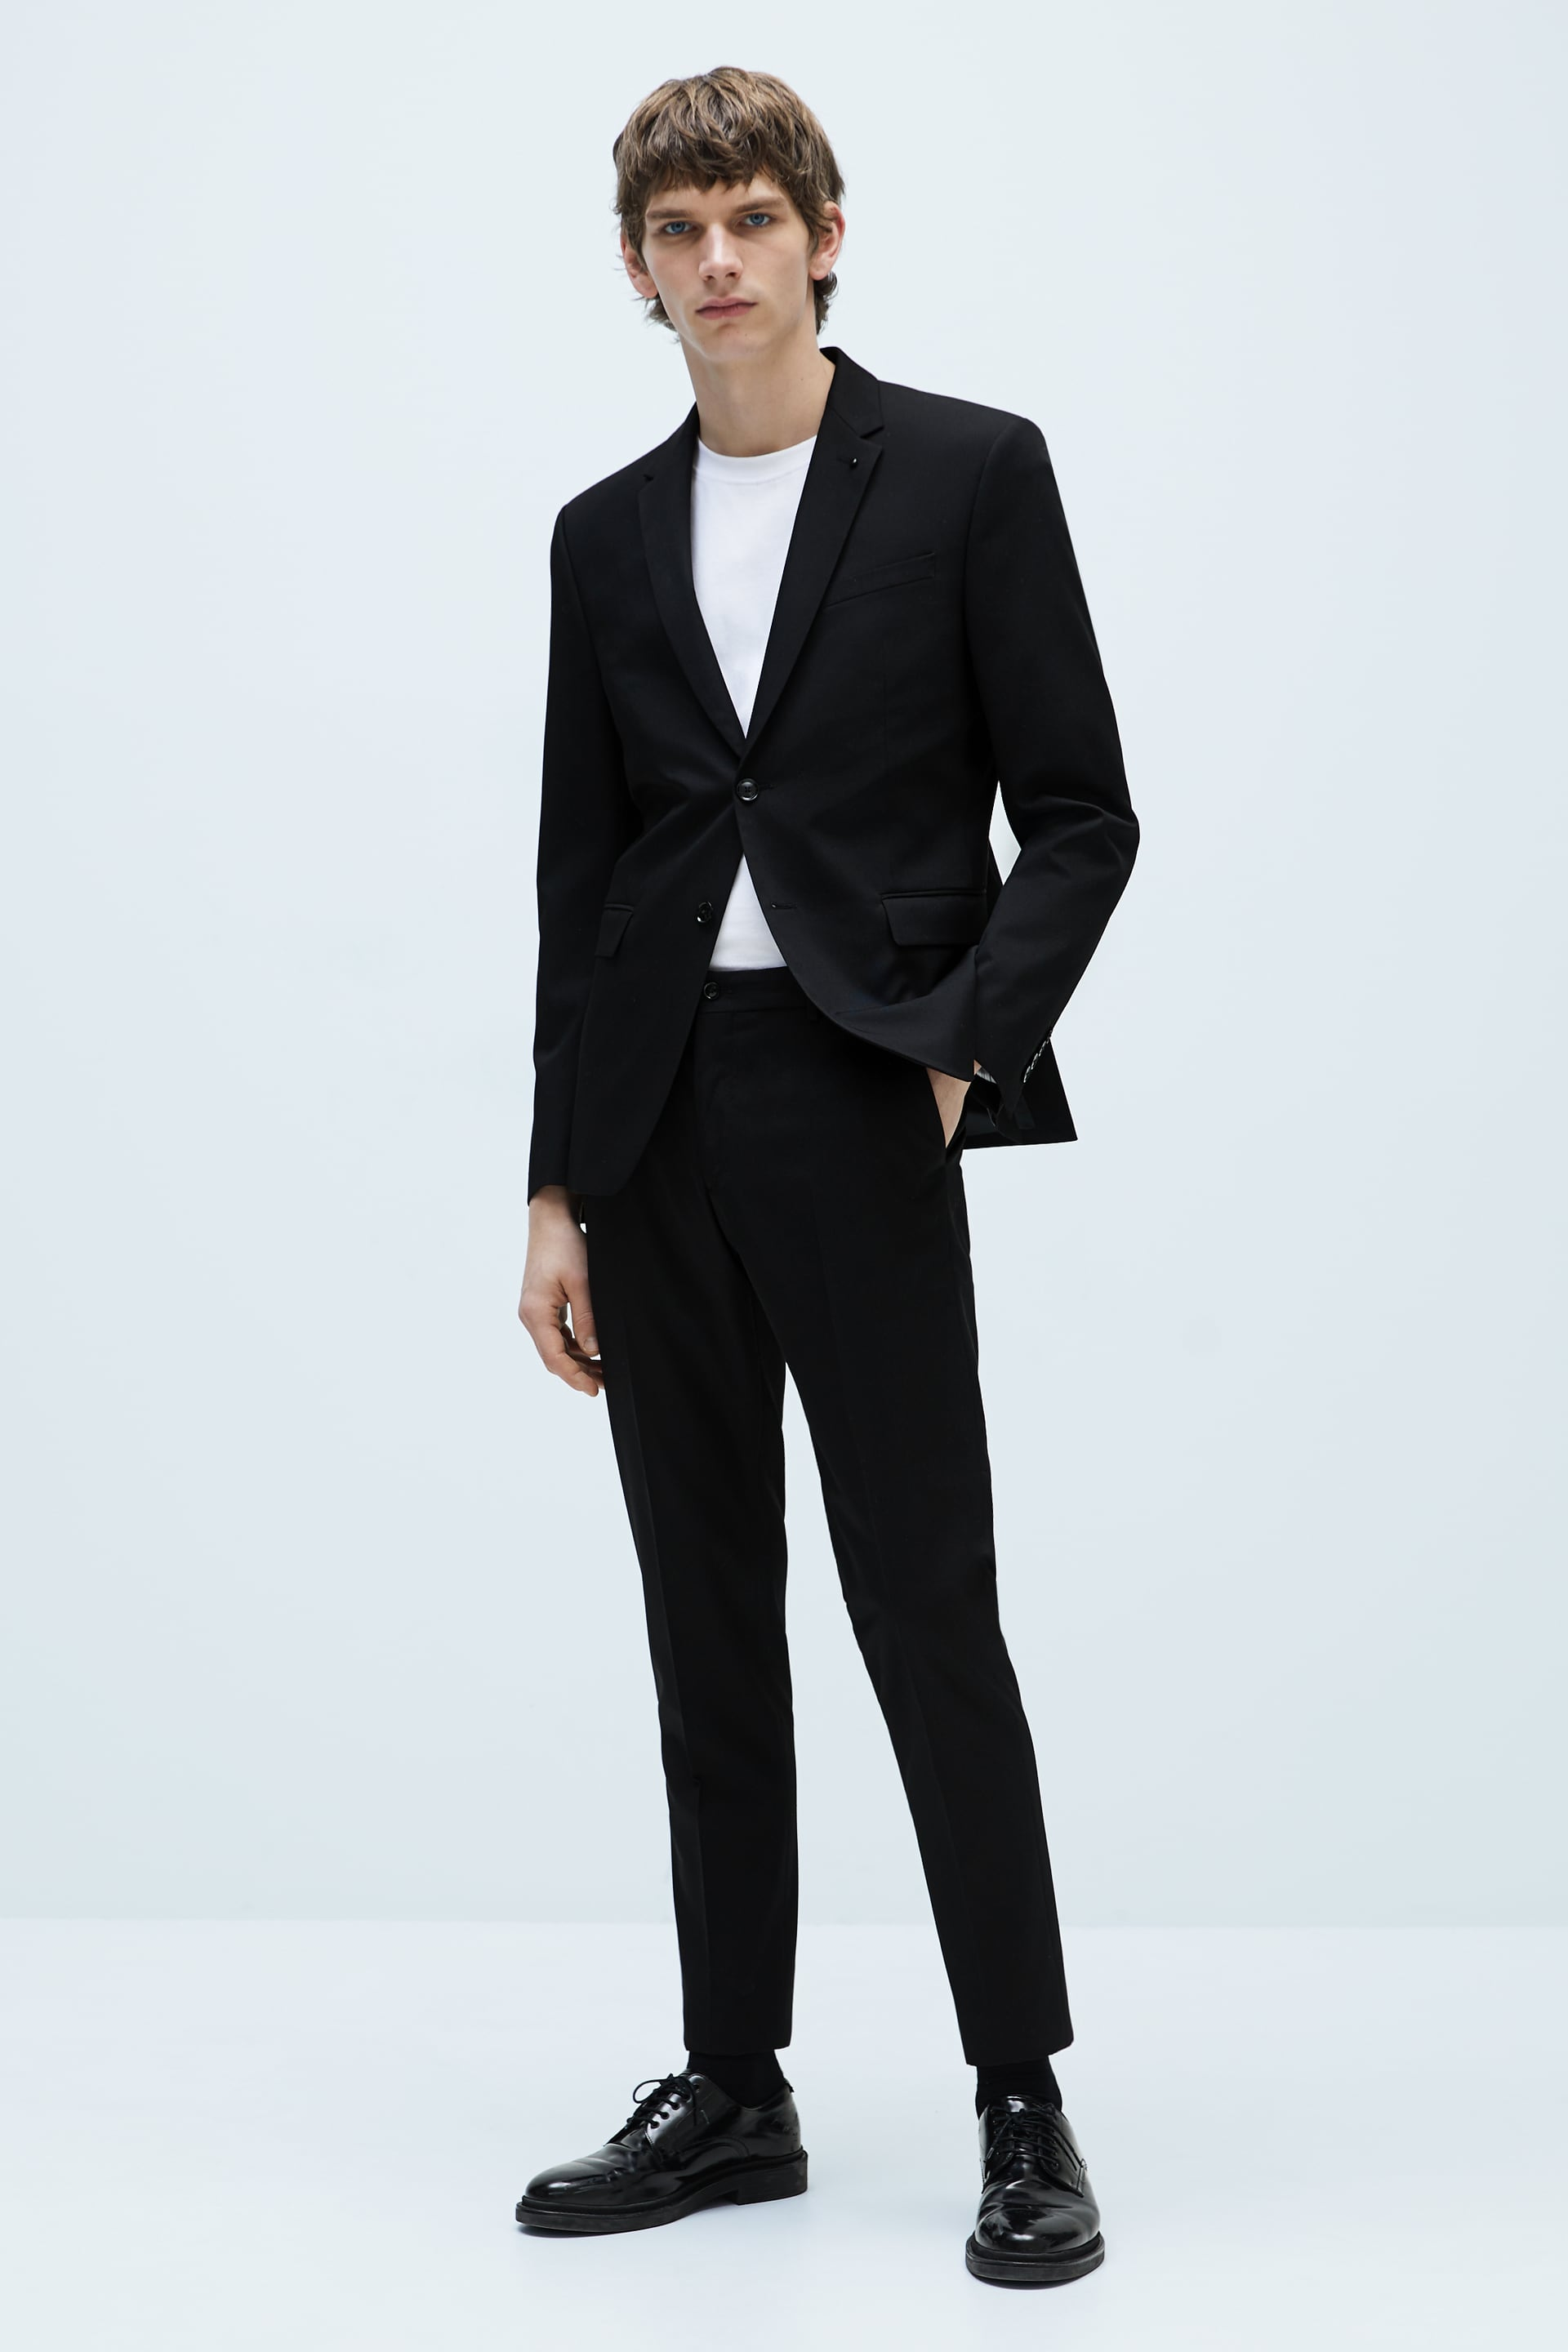 Tops to wear with a suit